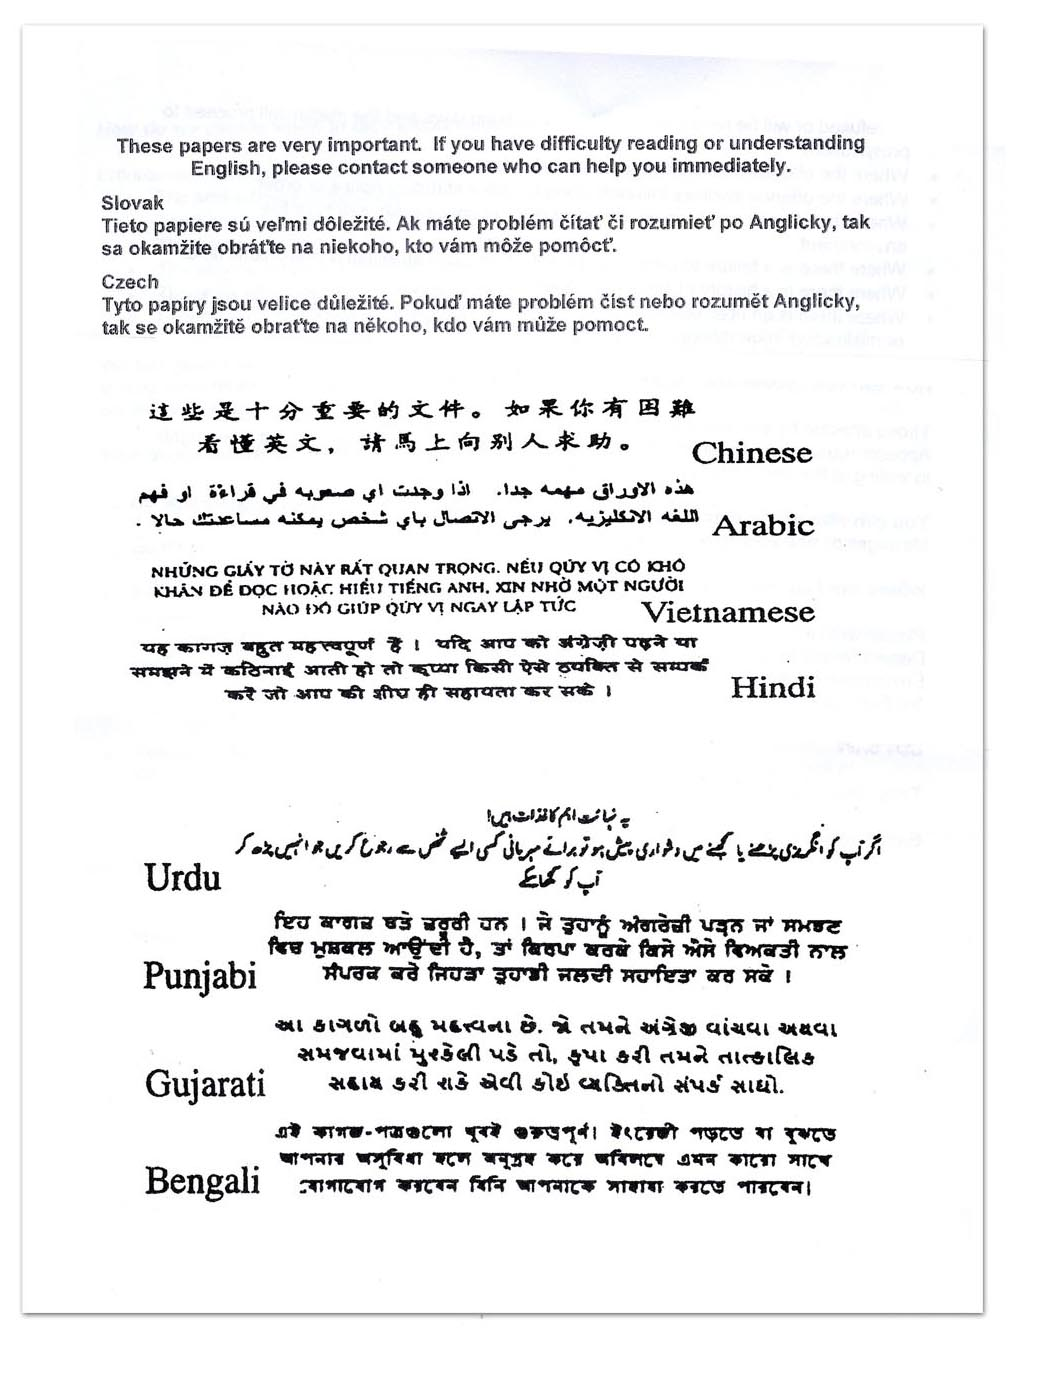 Modest Proposal Essay Law And Order Essay In Urdu Business Plan Writer Austin Tx also Examples Of Thesis Statements For English Essays Law And Order Essay In Urdu  Essay On Law And Order In Urdu Topics English Essay